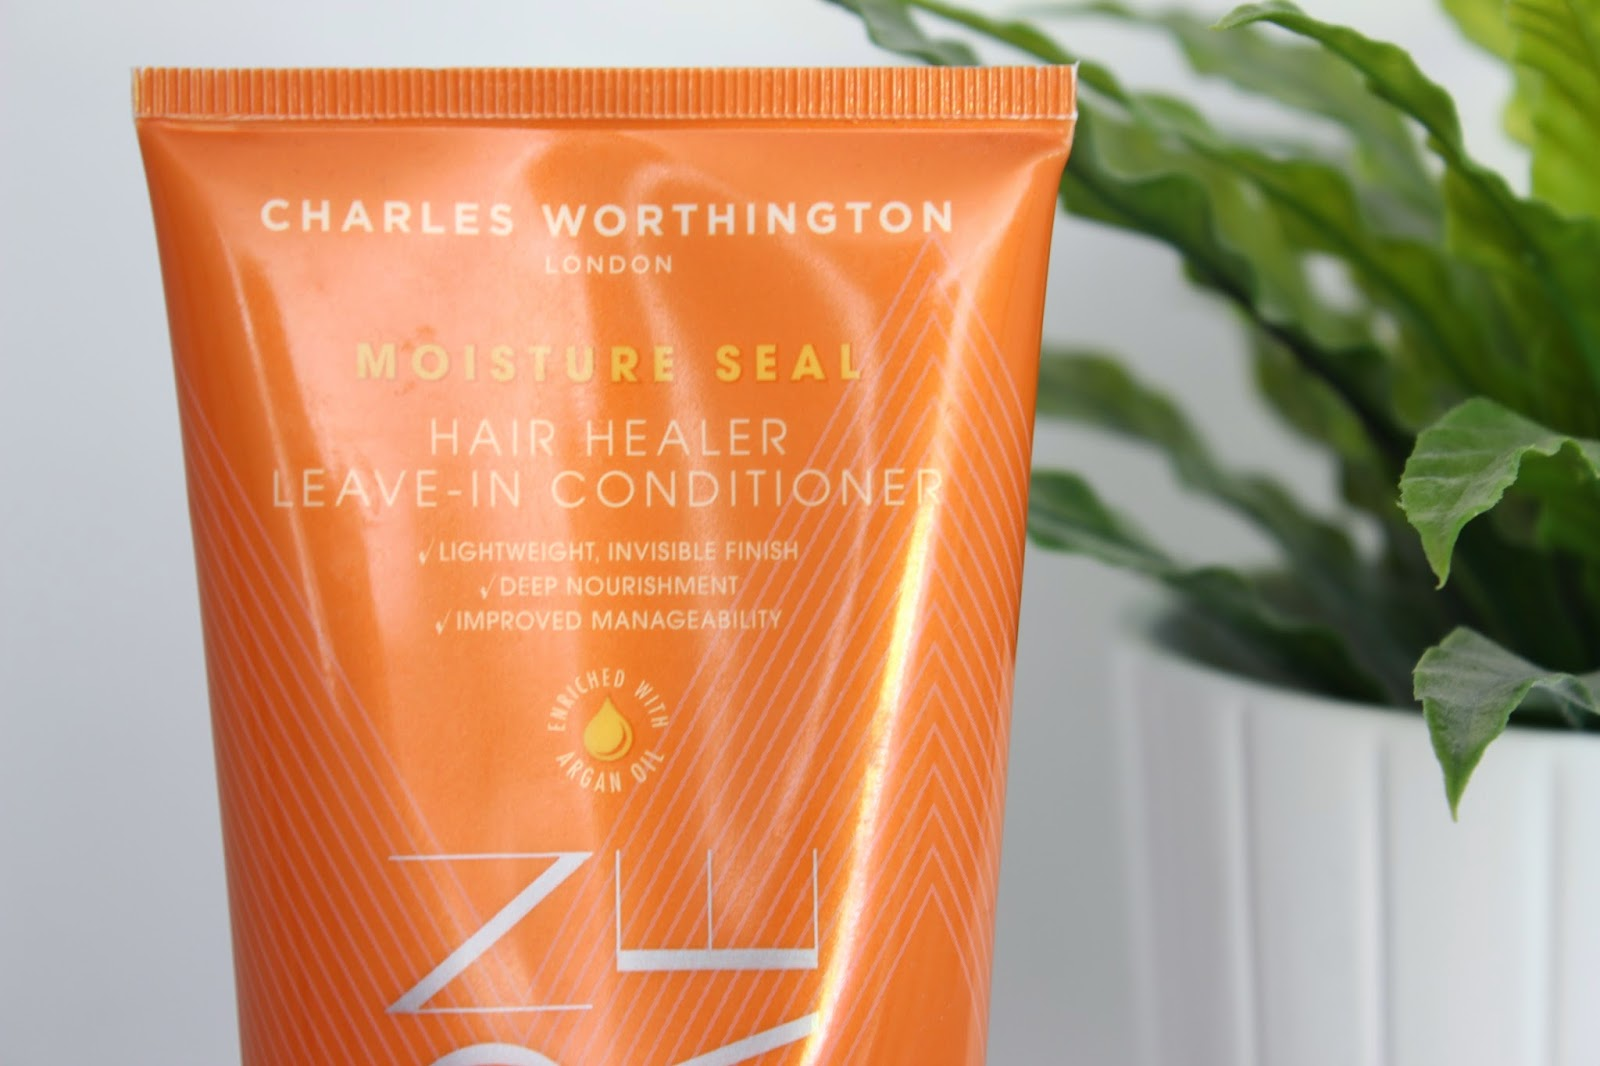 Charles Worthington Hair Healer Leave In Conditioner // Review